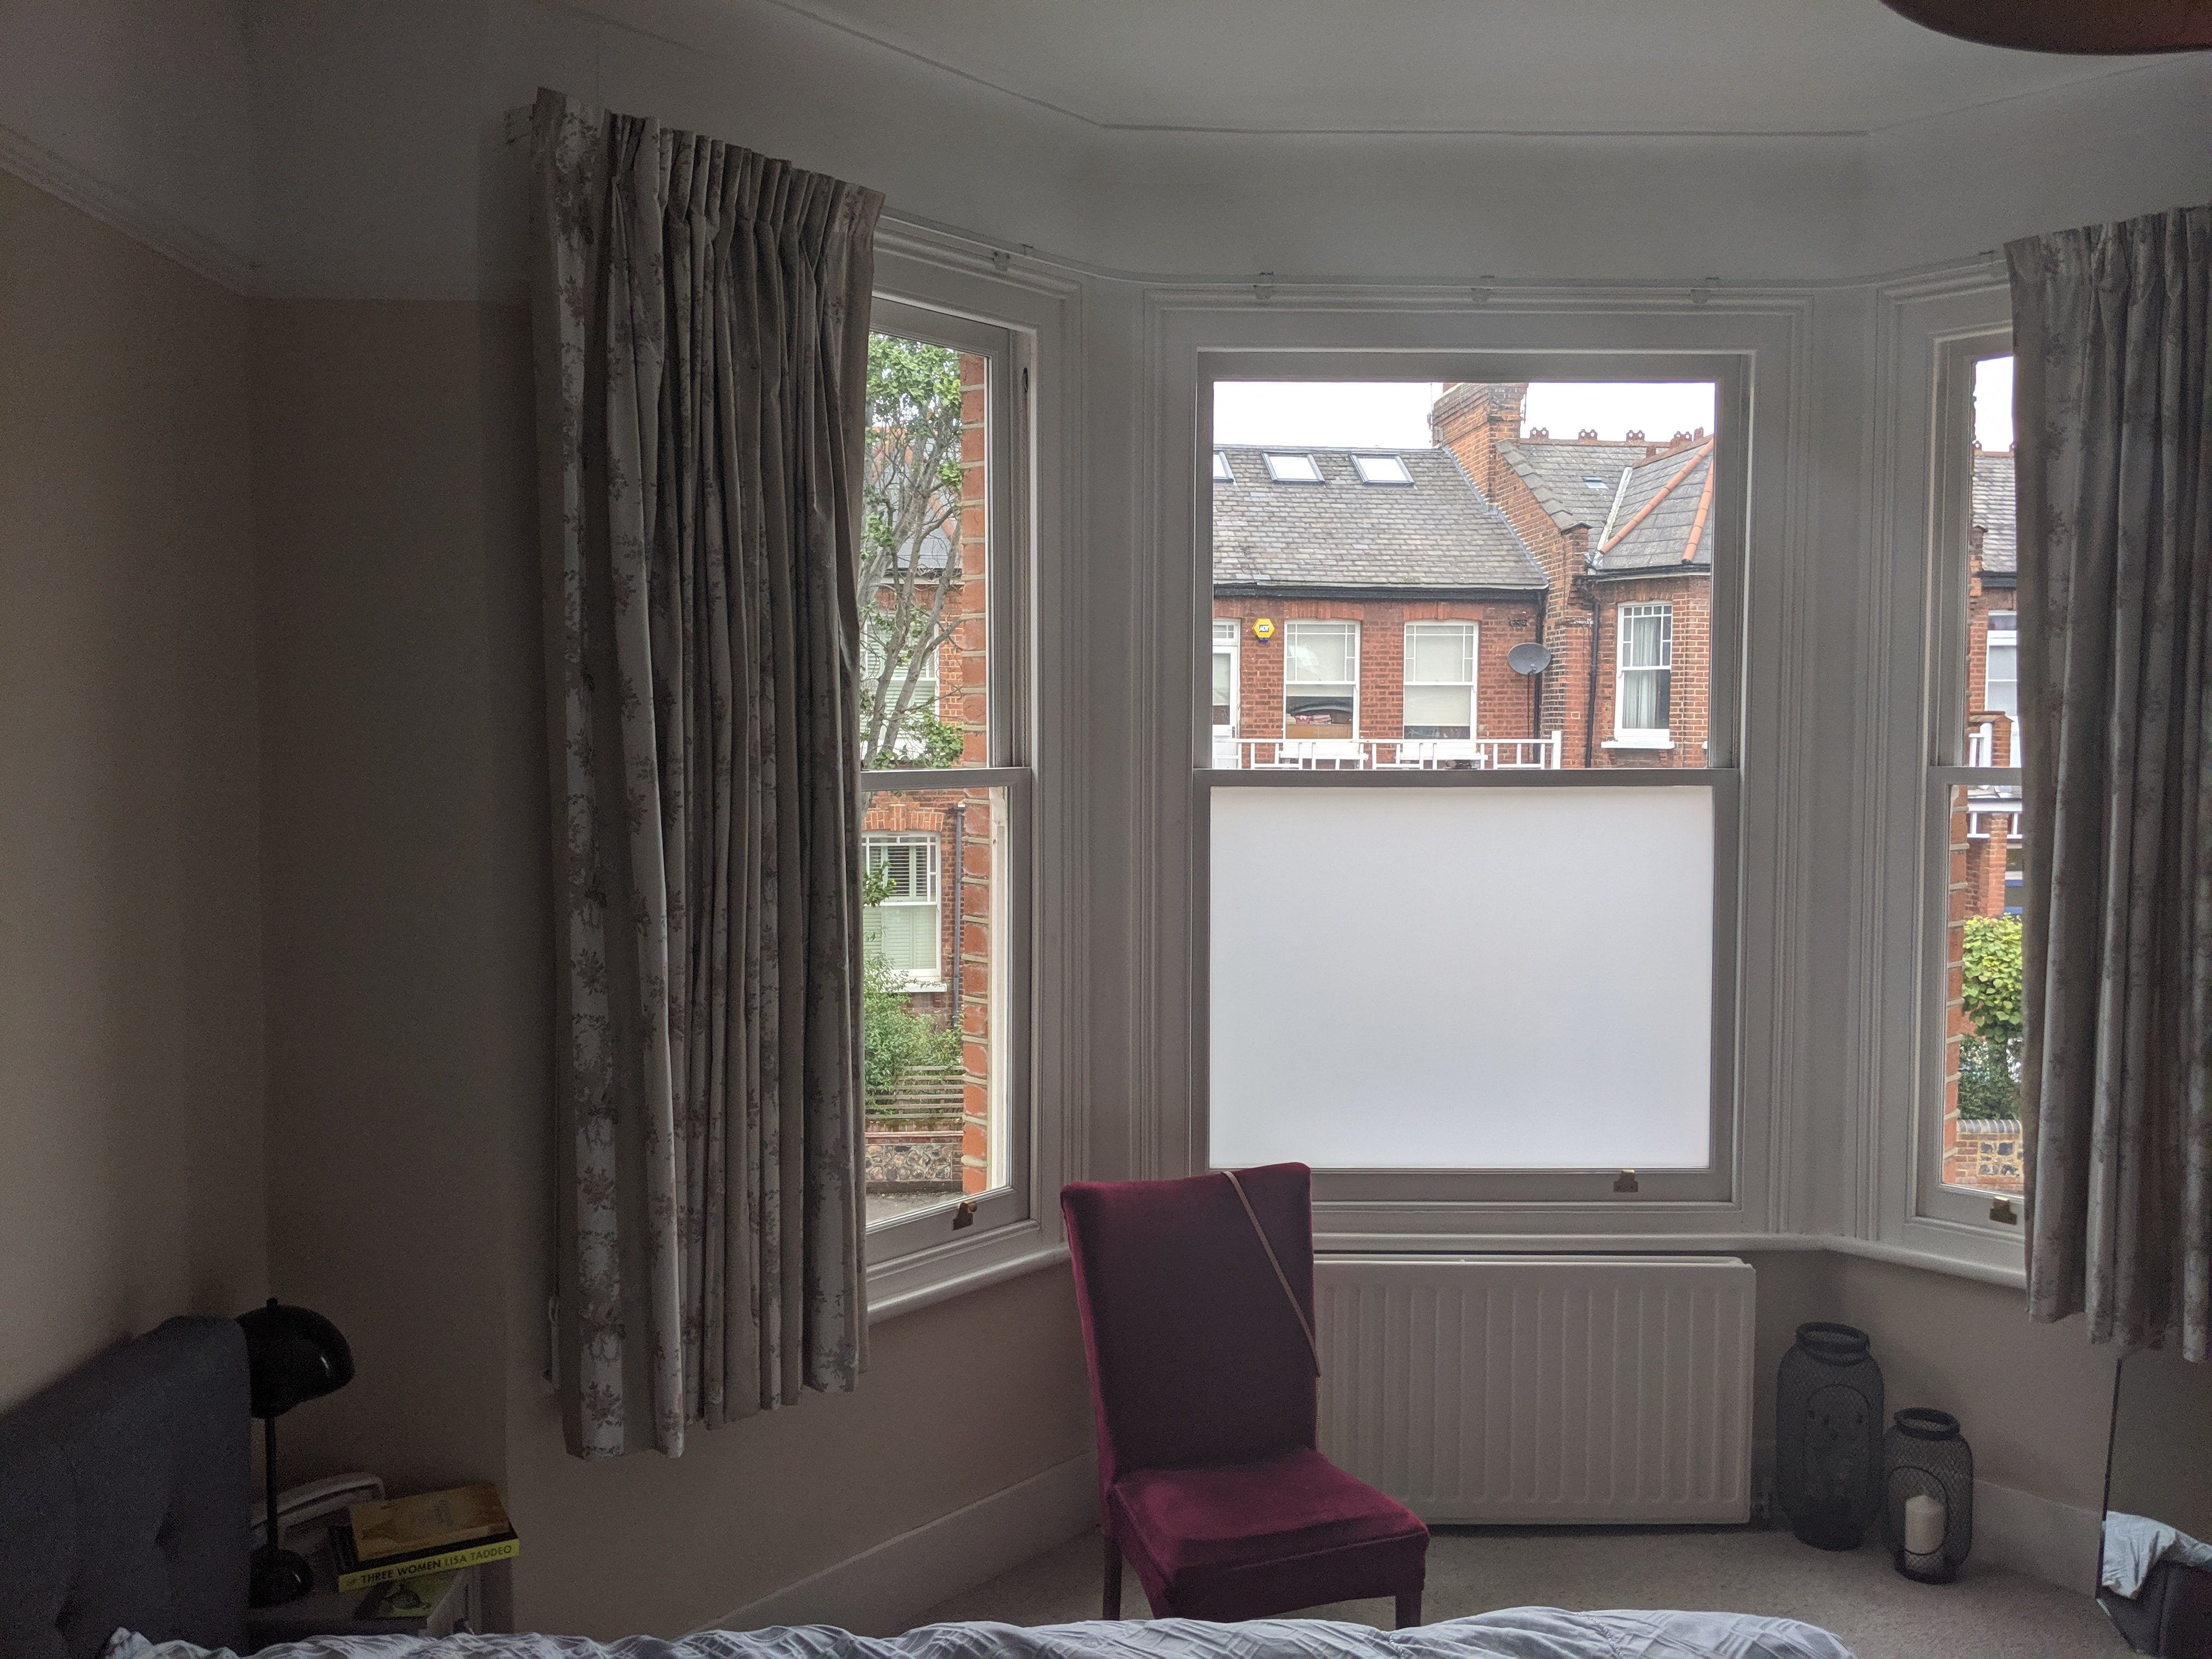 A before photo of the room, showing the peach walls and floral curtains at the window.